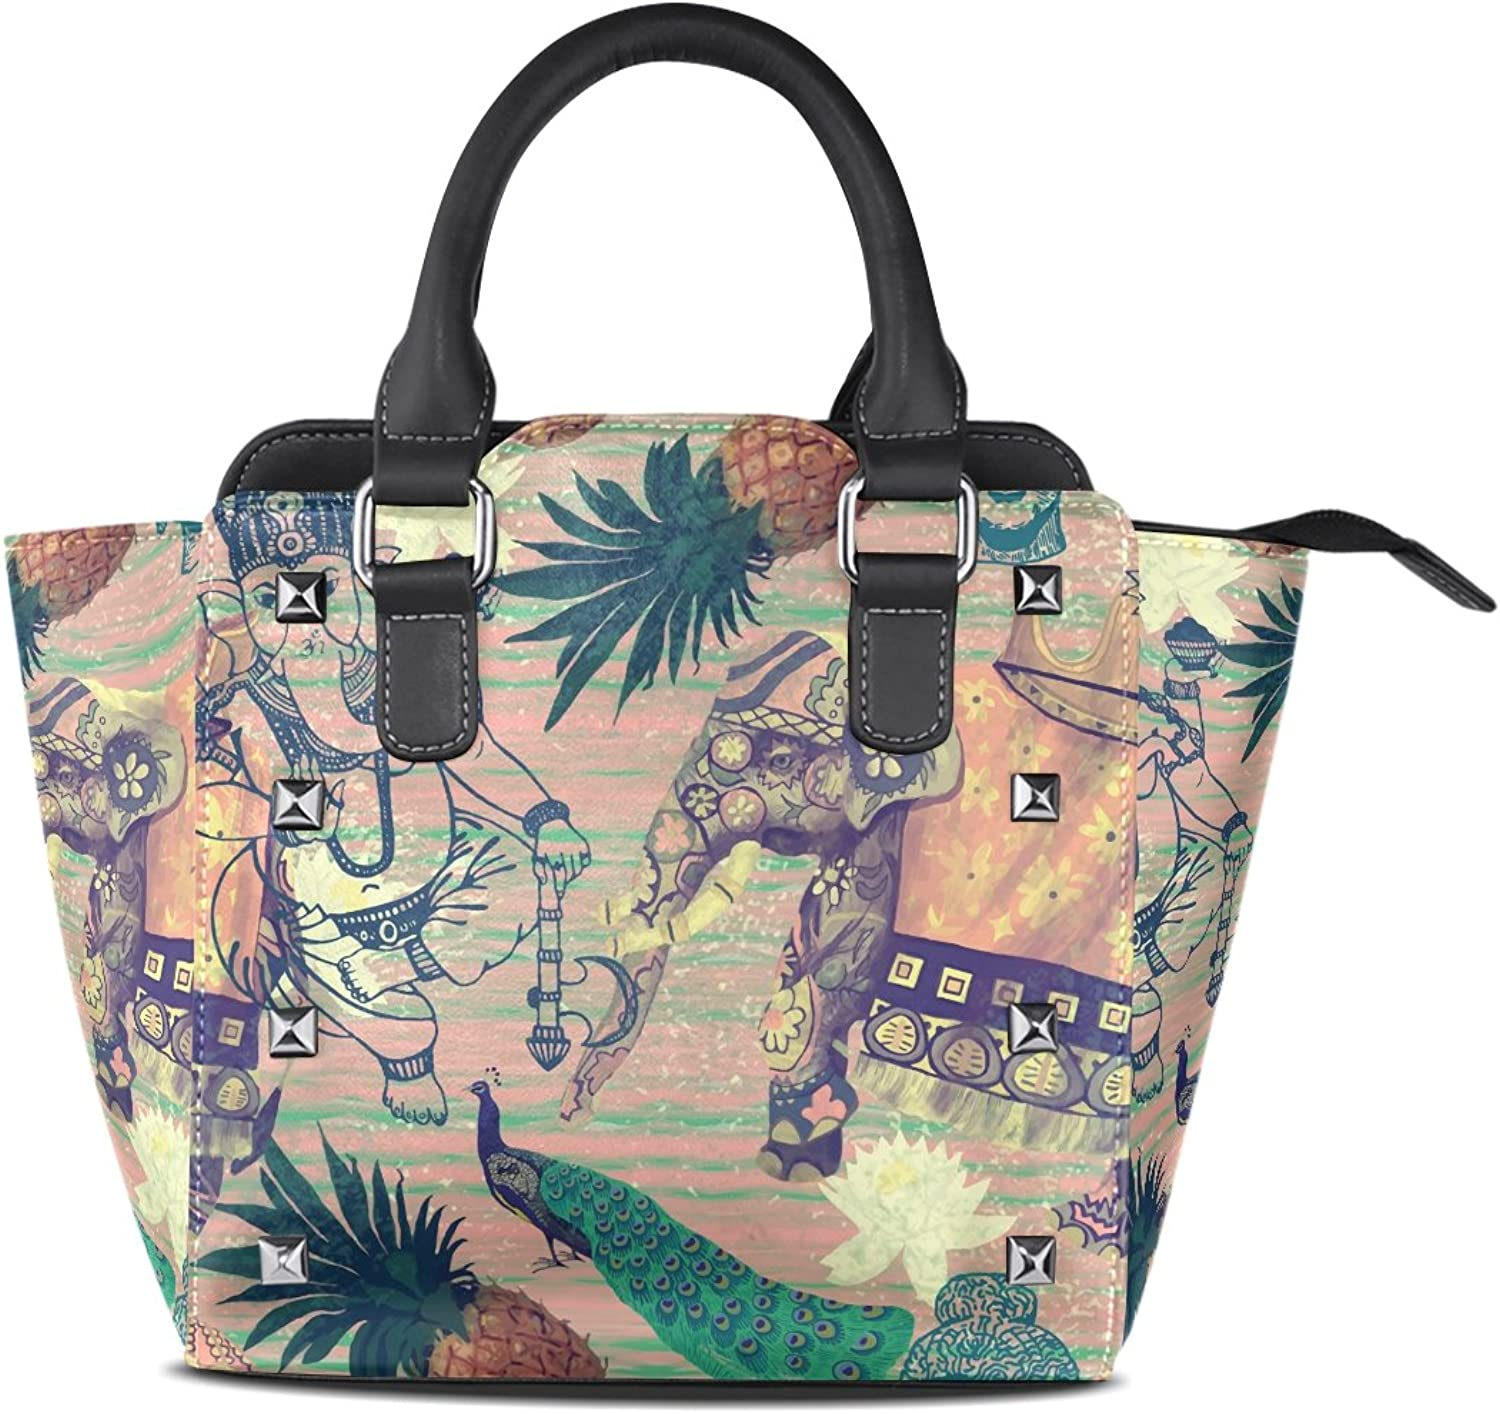 Sunlome Vintage Flowers Pineapples Buddha Head and Indian Elephants Print Handbags Women's PU Leather Top-Handle Shoulder Bags